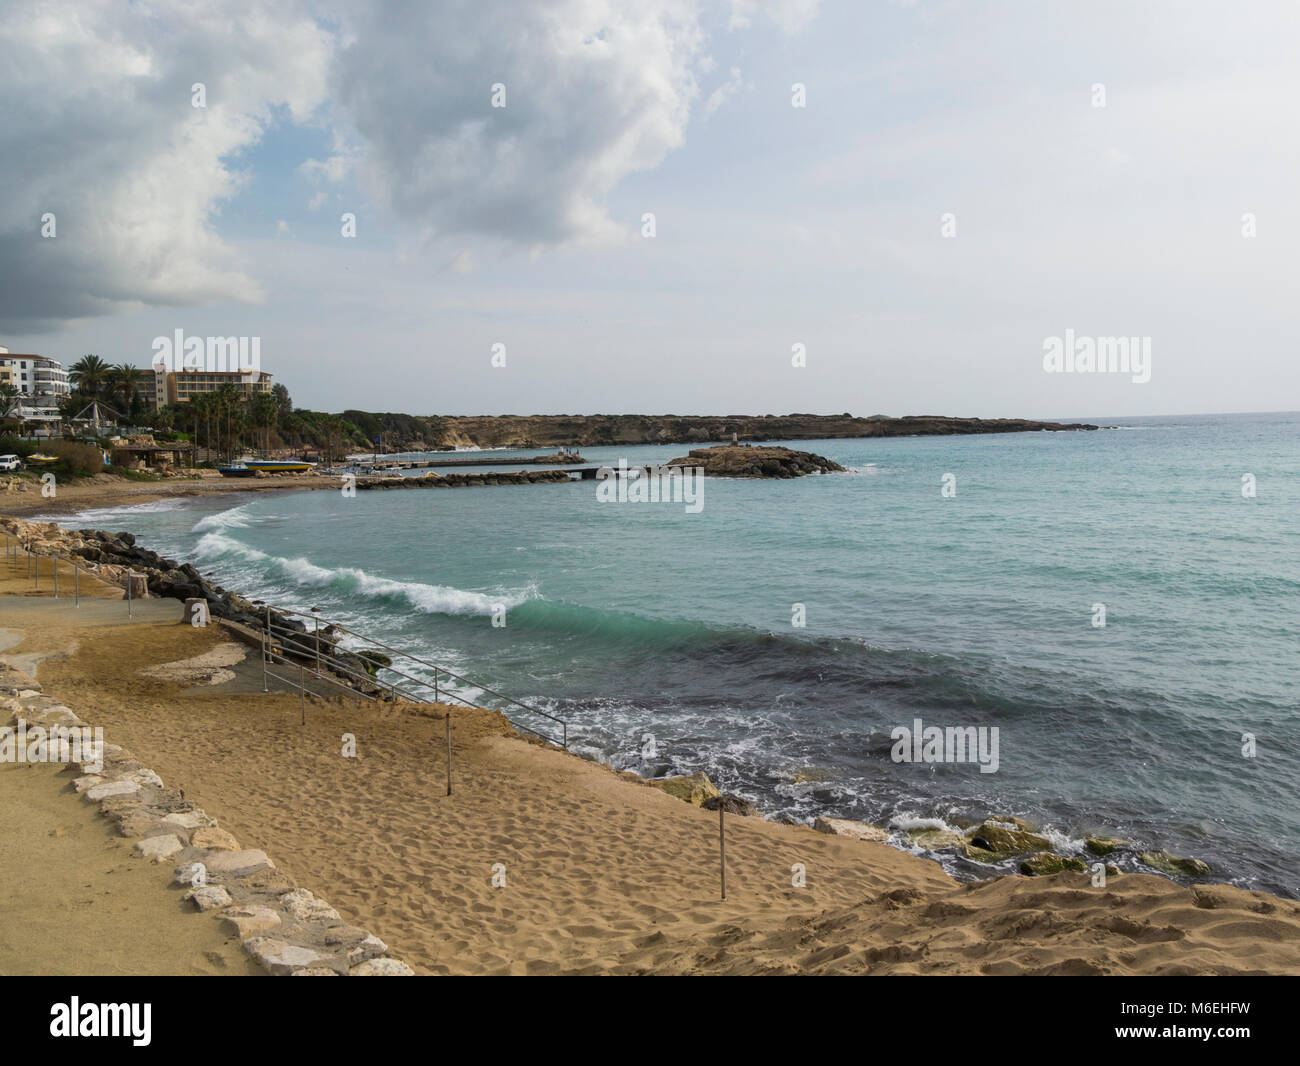 Looking along coastline at Coral Bay Cyprus with Mediterreaneum sea pounding the rocks popular tourist resort in - Stock Image